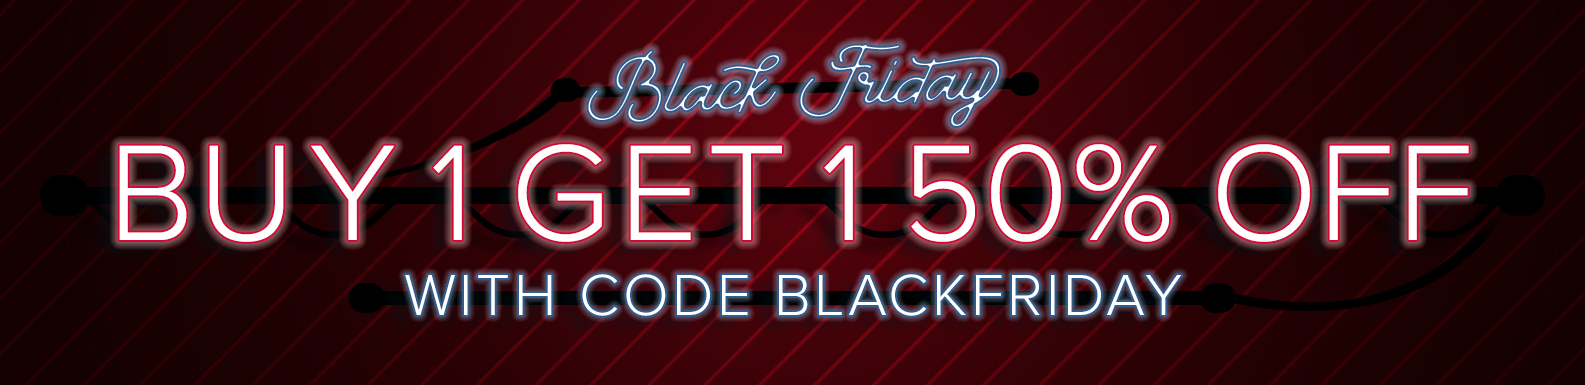 Black Friday: Buy one get one 50% off